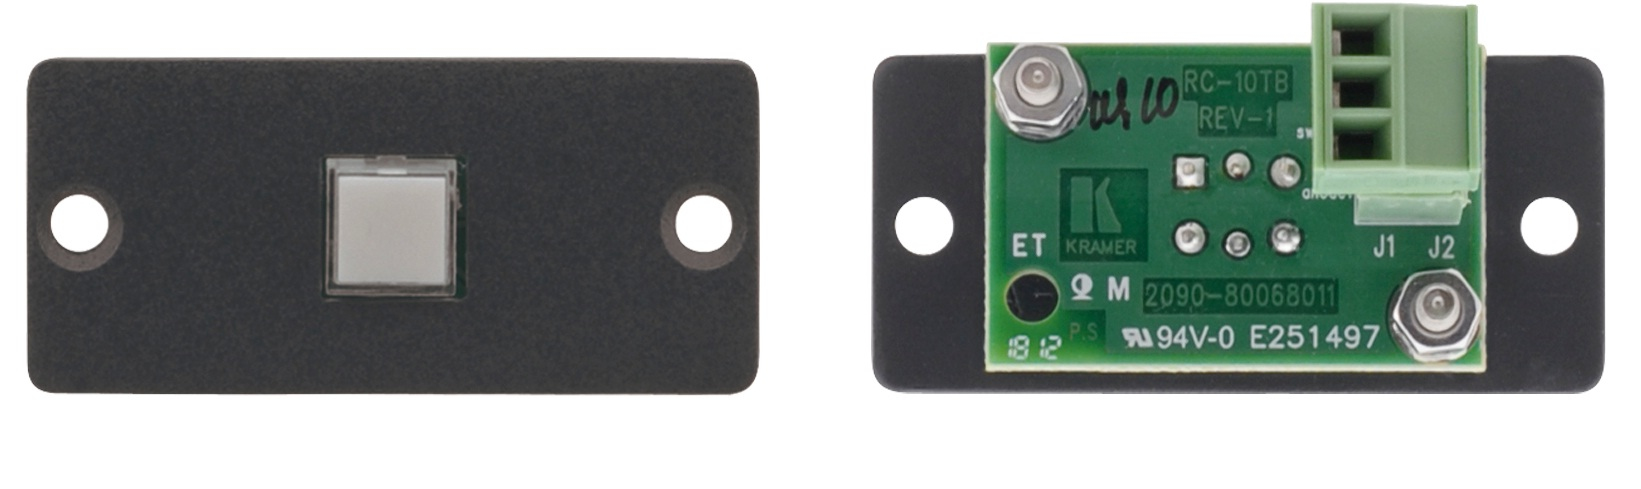 WALL PLATE INSERT -1-BUTTON CONTACT CLOSURE SWITCH